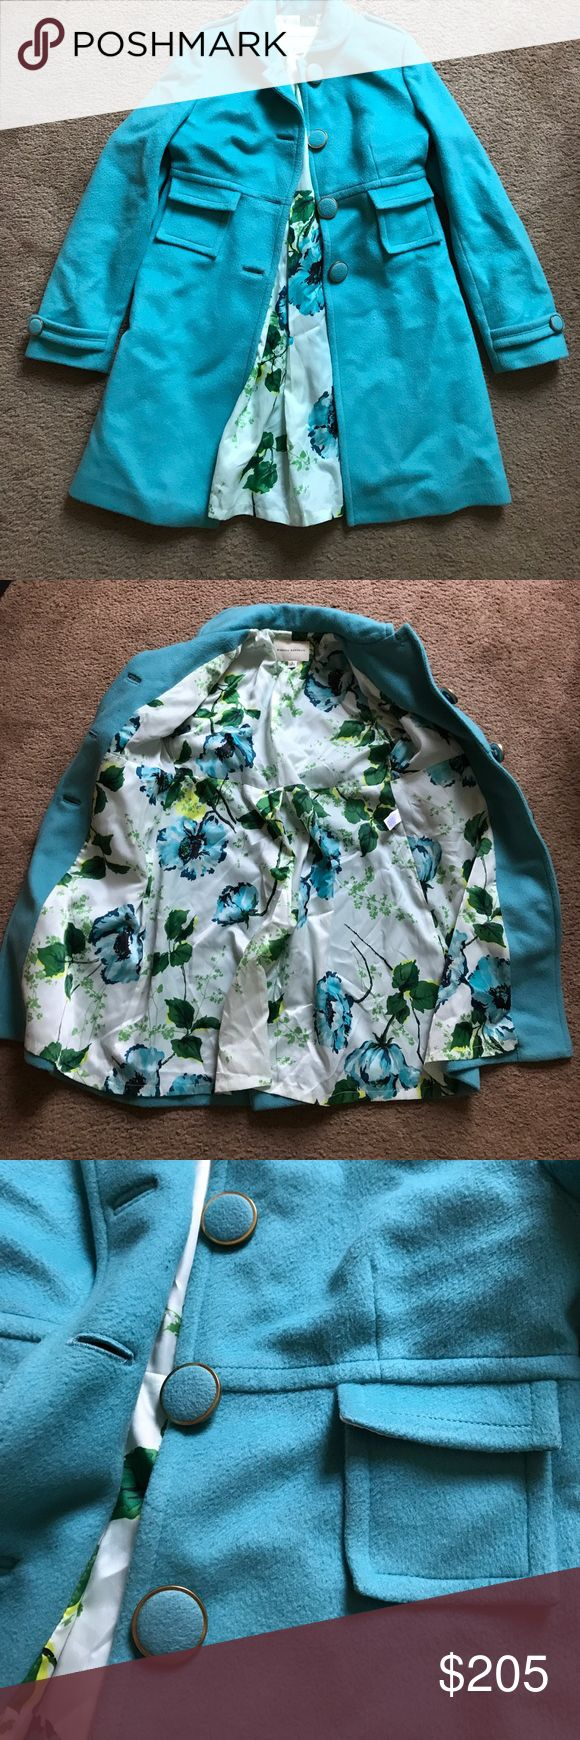 Vintage BR turquoise coat with floral lining Vintage Banana Republic turquoise coat, floral lining, gold rim buttons, great condition. Banana Republic Jackets & Coats Pea Coats